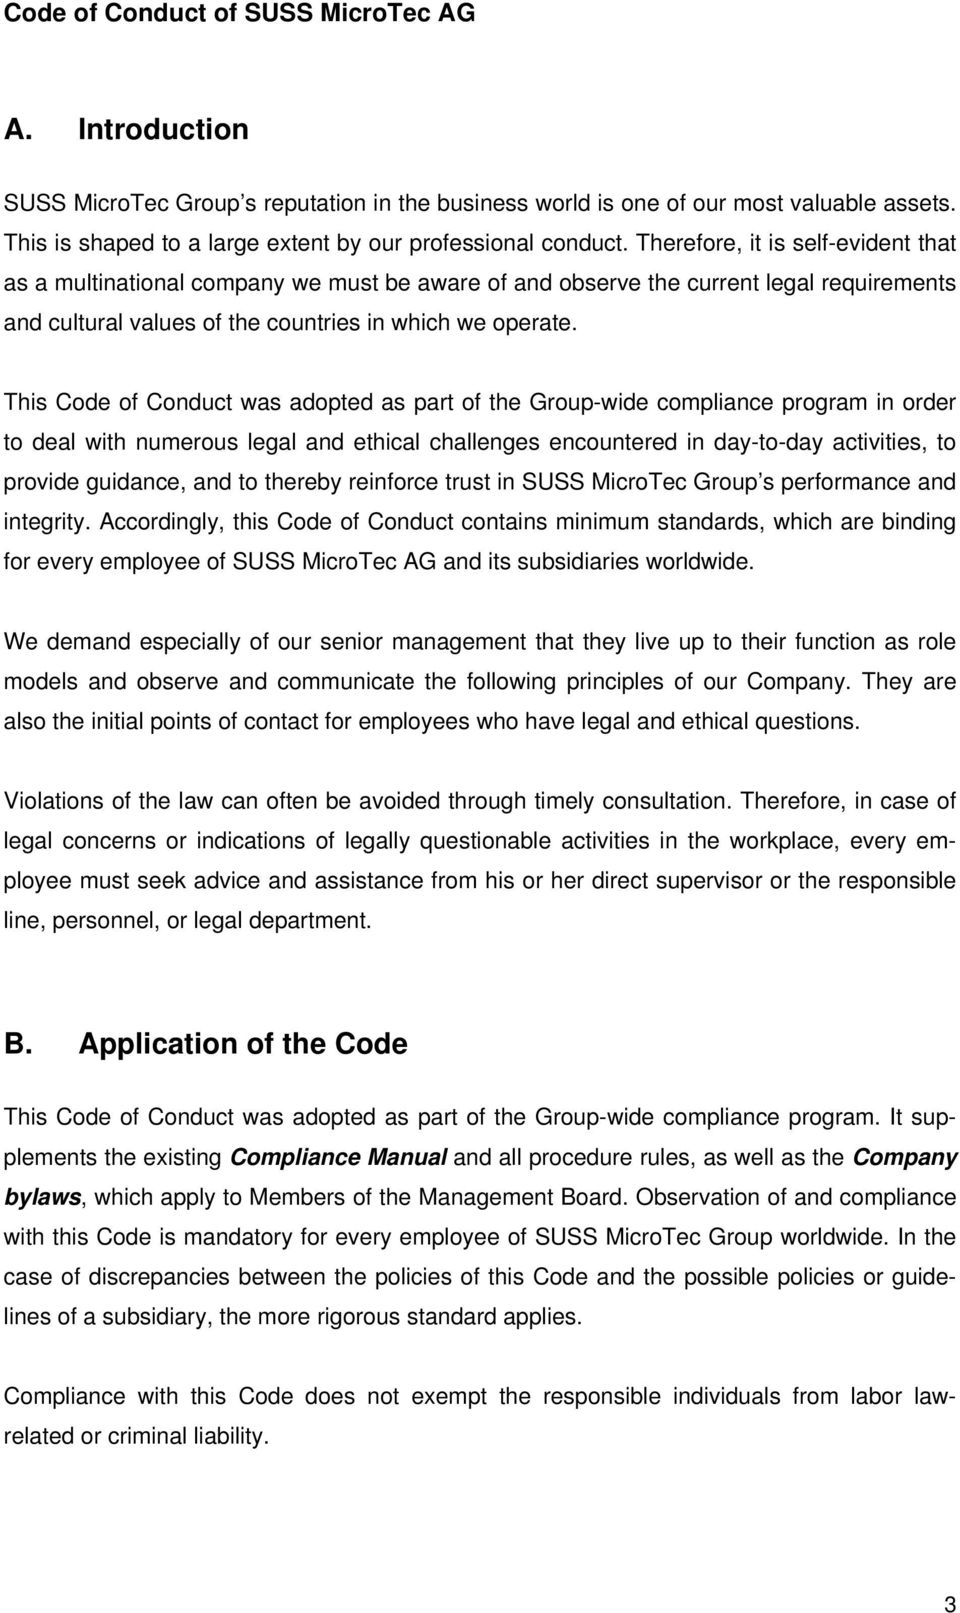 This Code of Conduct was adopted as part of the Group-wide compliance program in order to deal with numerous legal and ethical challenges encountered in day-to-day activities, to provide guidance,